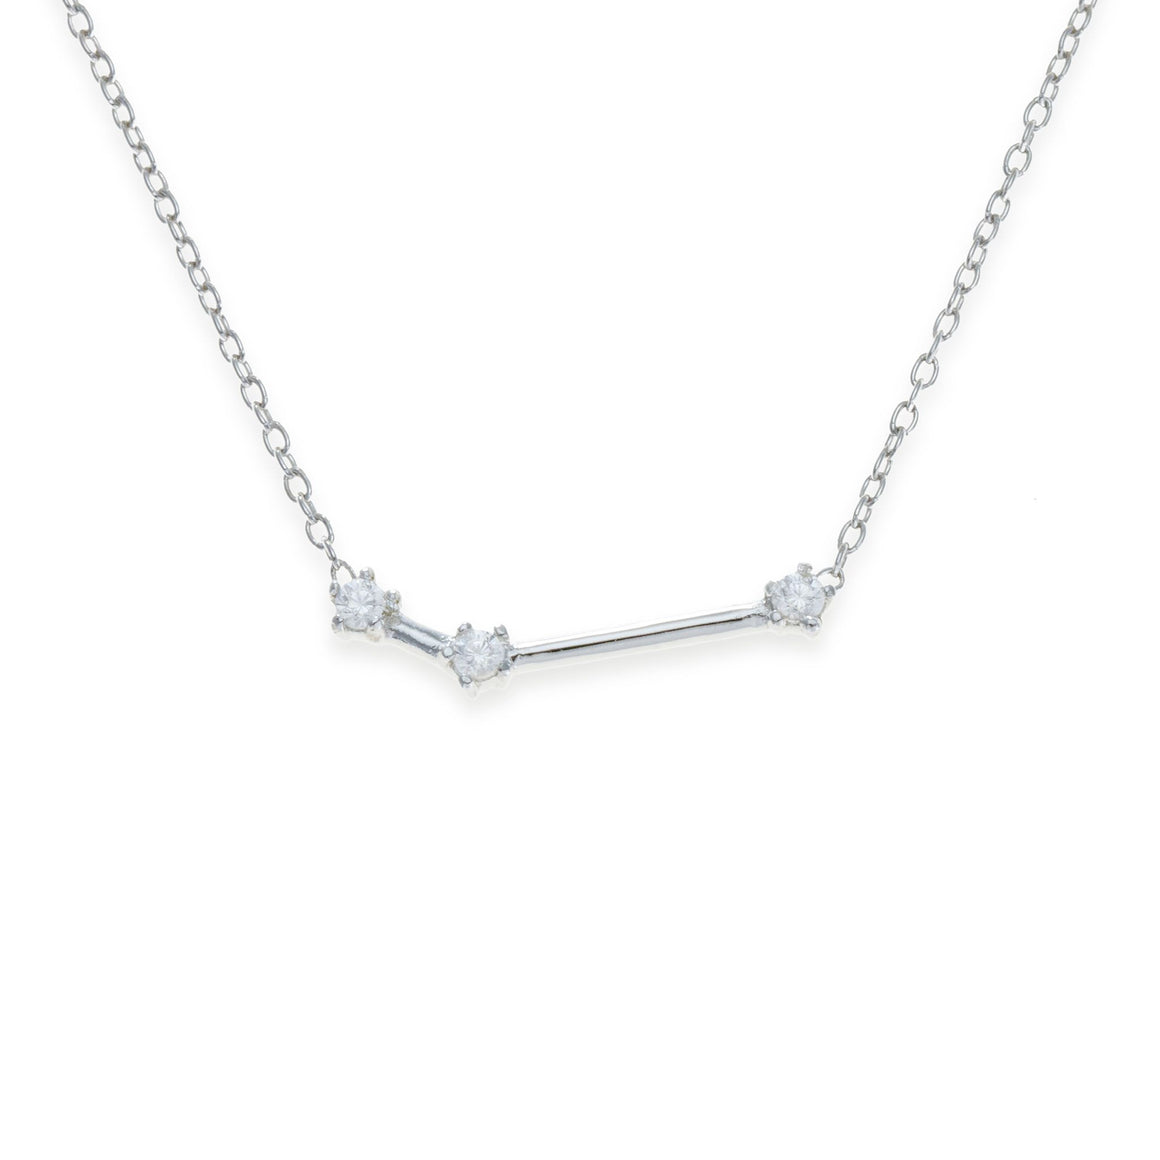 Sterling Silver Aries Necklace | Kith & Kin | Wish Upon a Star Collection